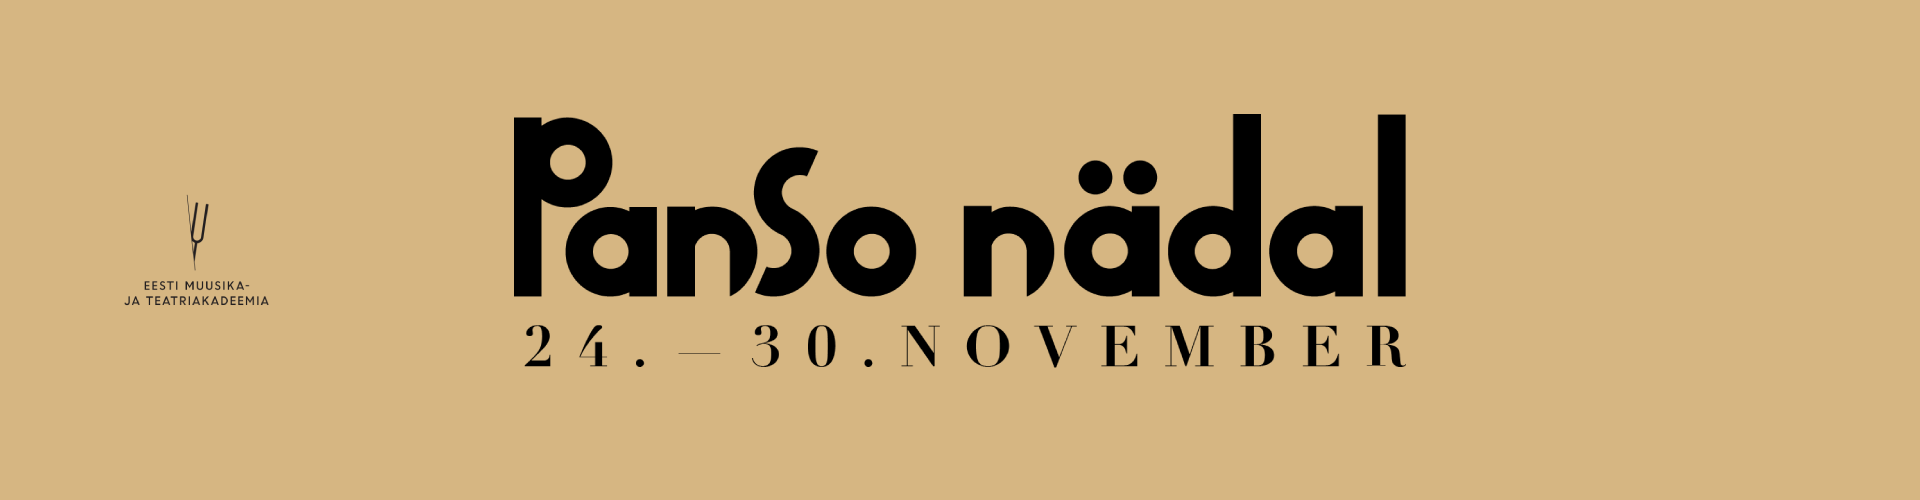 http://lavakas.ee/panso100/wp-content/uploads/2020/10/Panso100_hpanso2-1.png